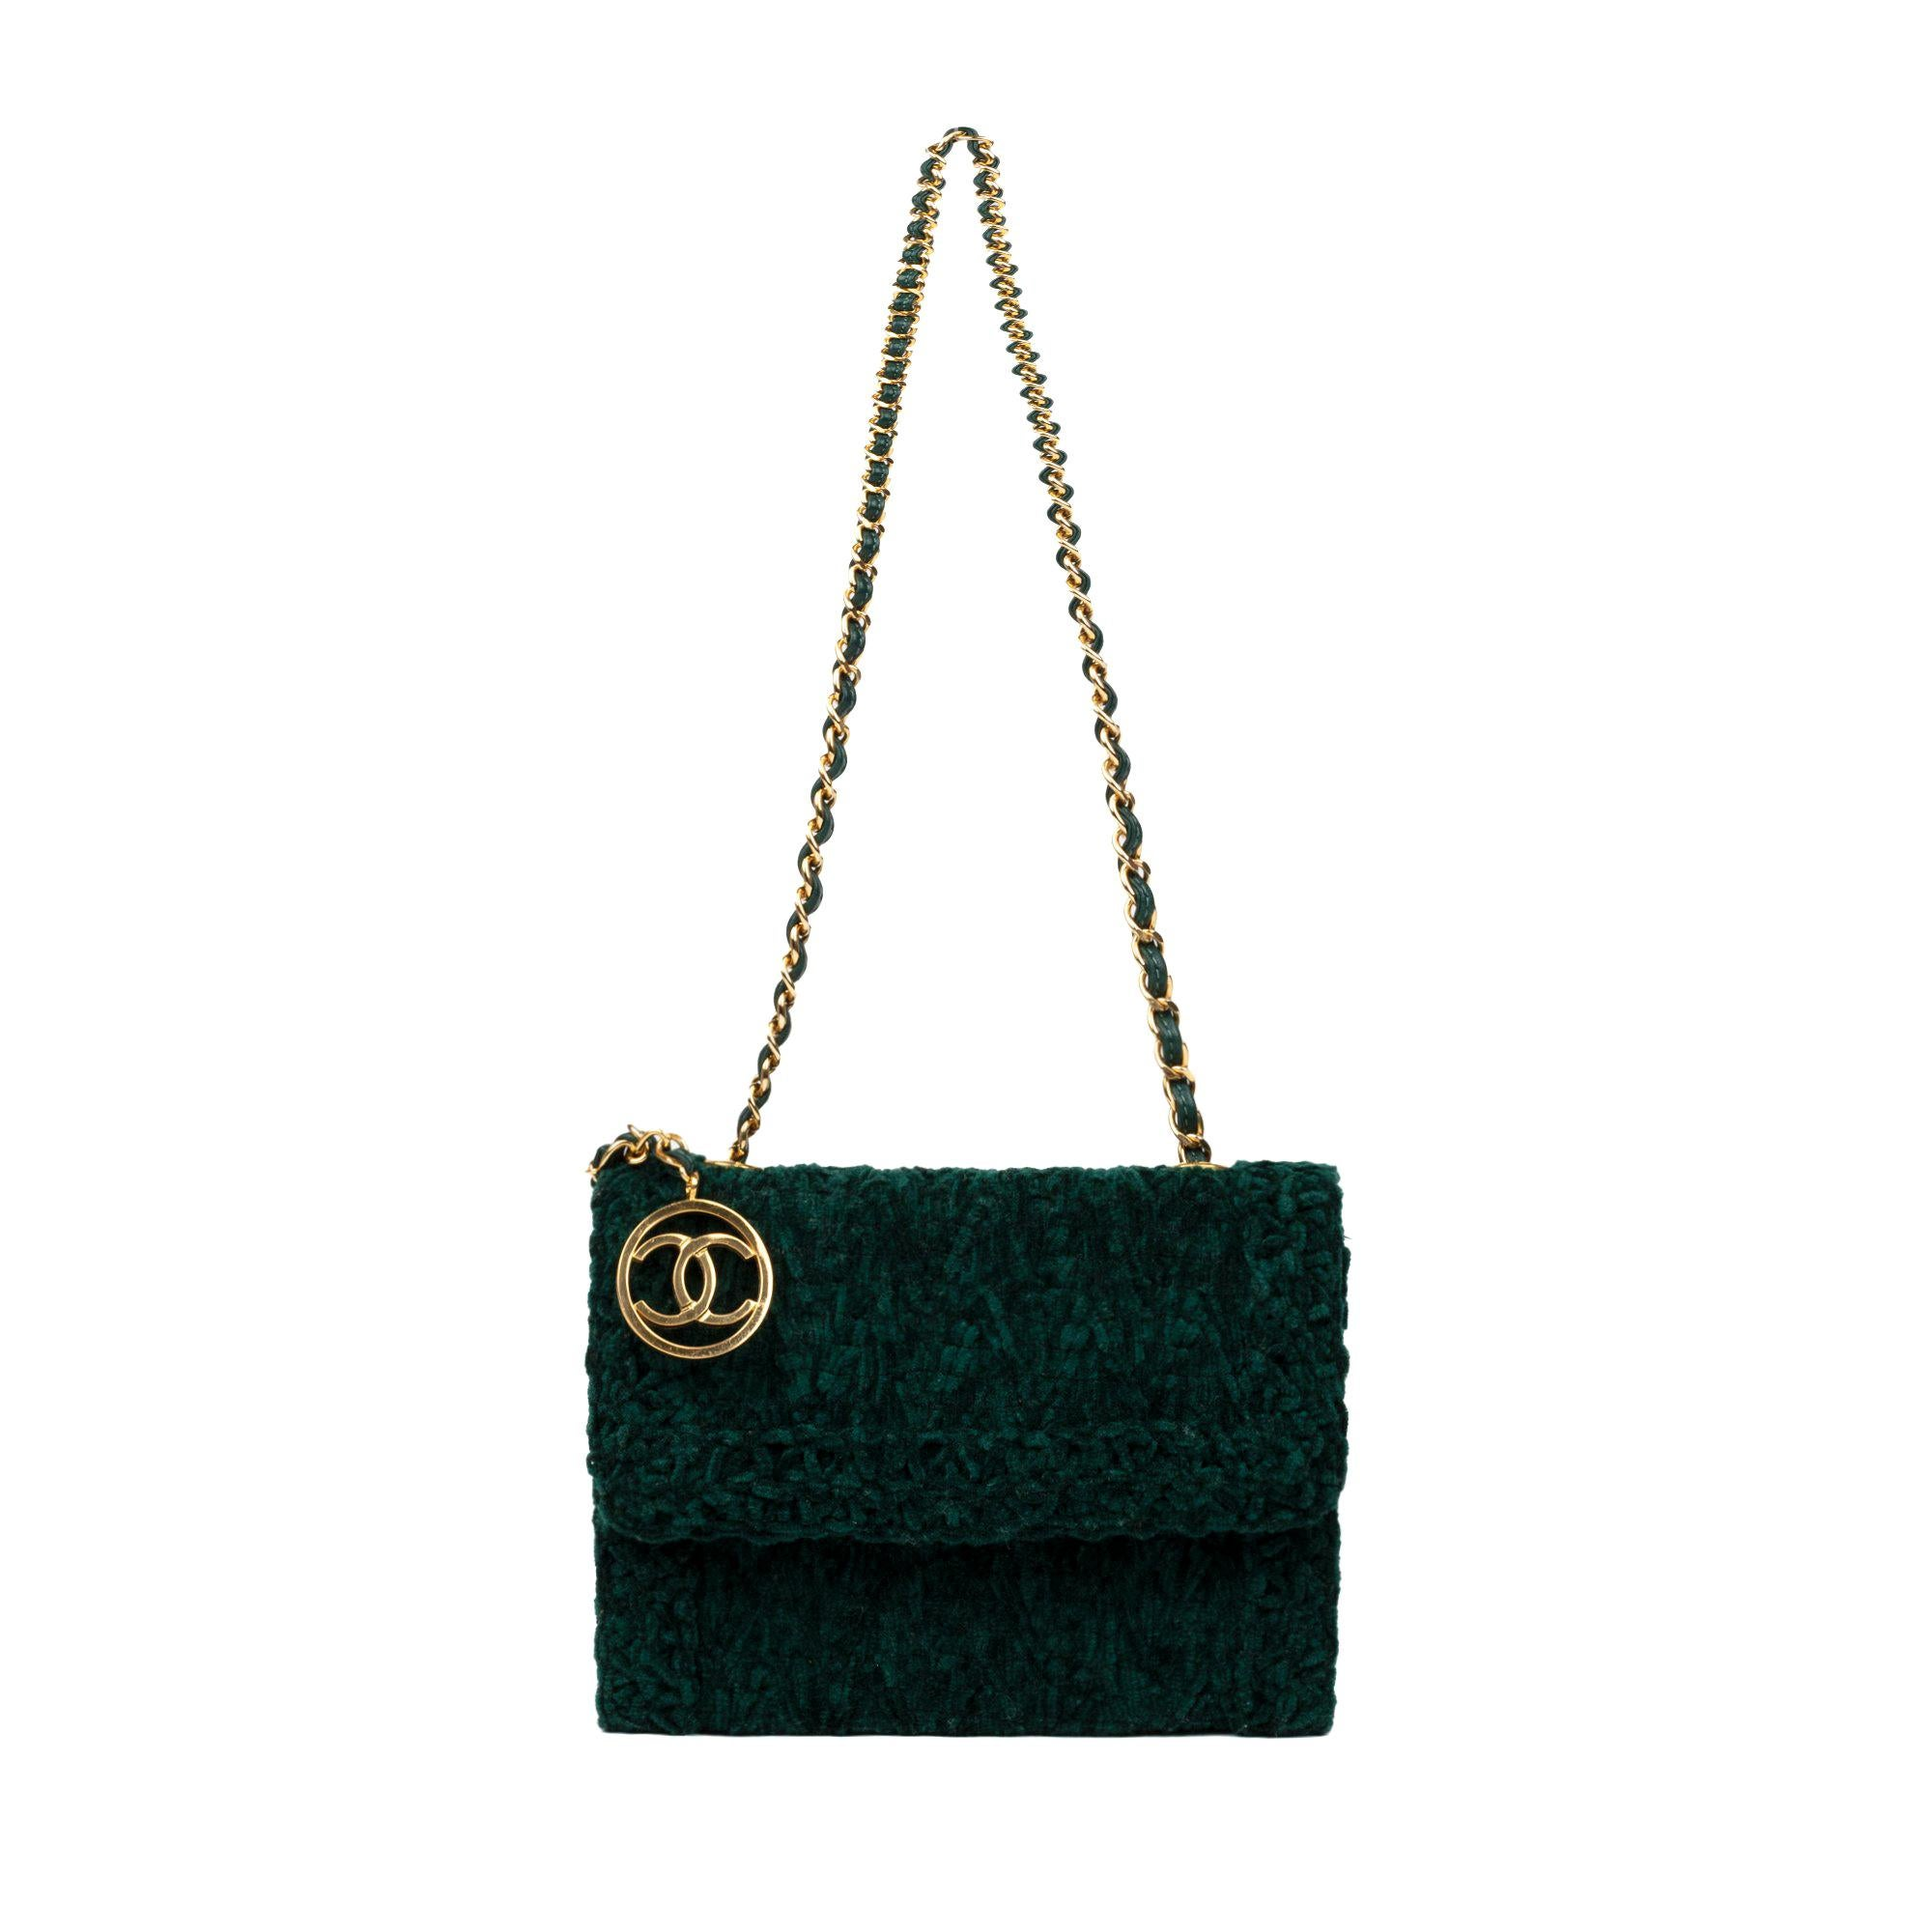 4376787a90 Velvet Chanel Bags - 49 For Sale on 1stdibs